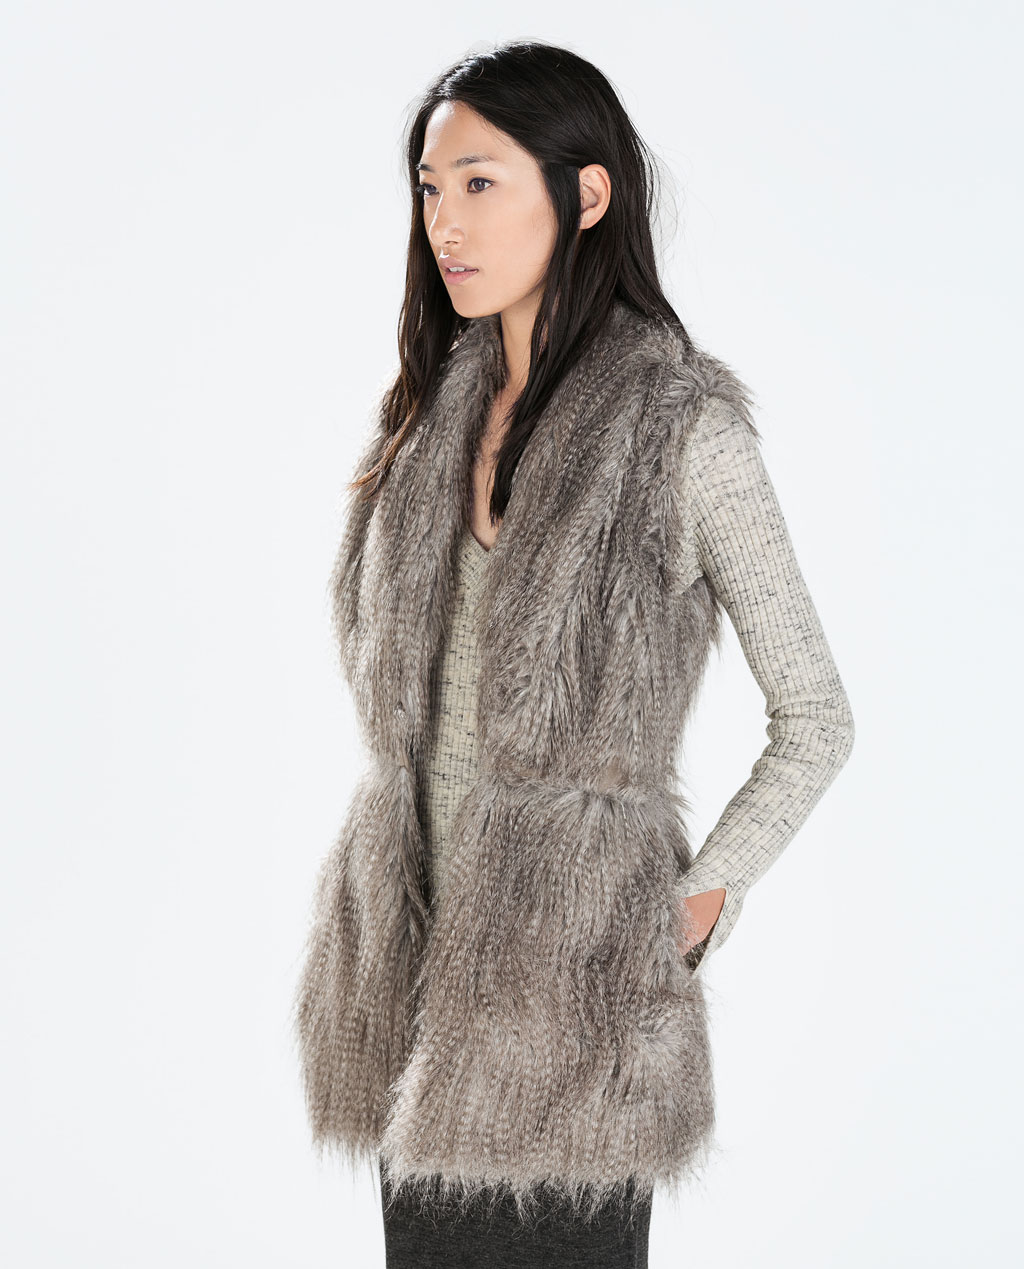 This is a brand new Zara creamy beige faux fur vest that was only worn once. It is super soft and warm and super cute on for a casual day or a night out. It is a size M but does not feel big.